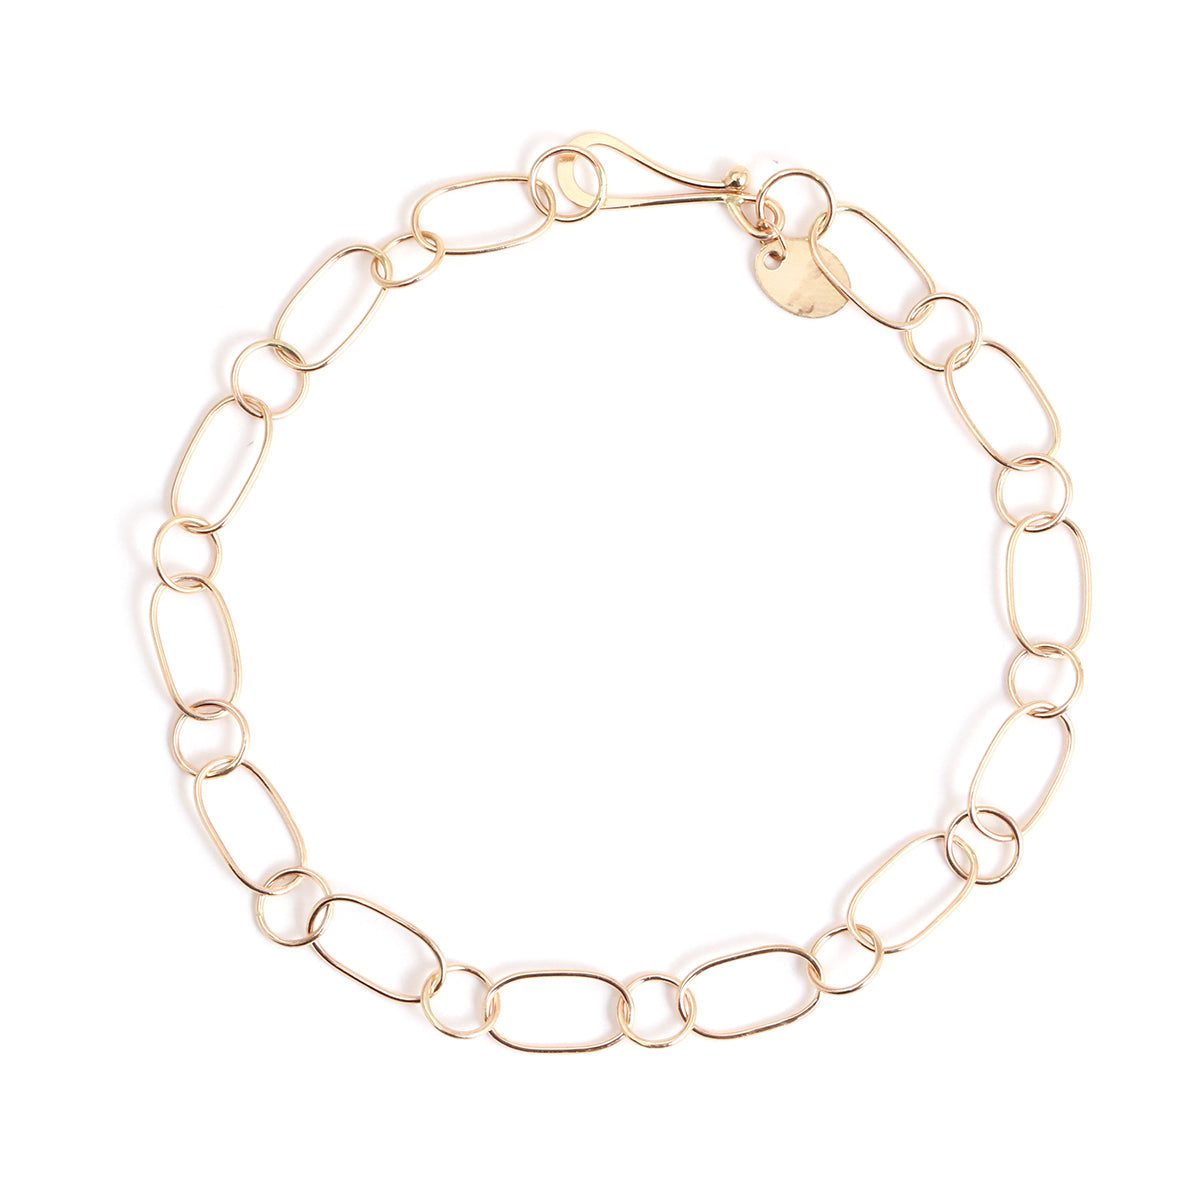 Oval and round chain bracelet